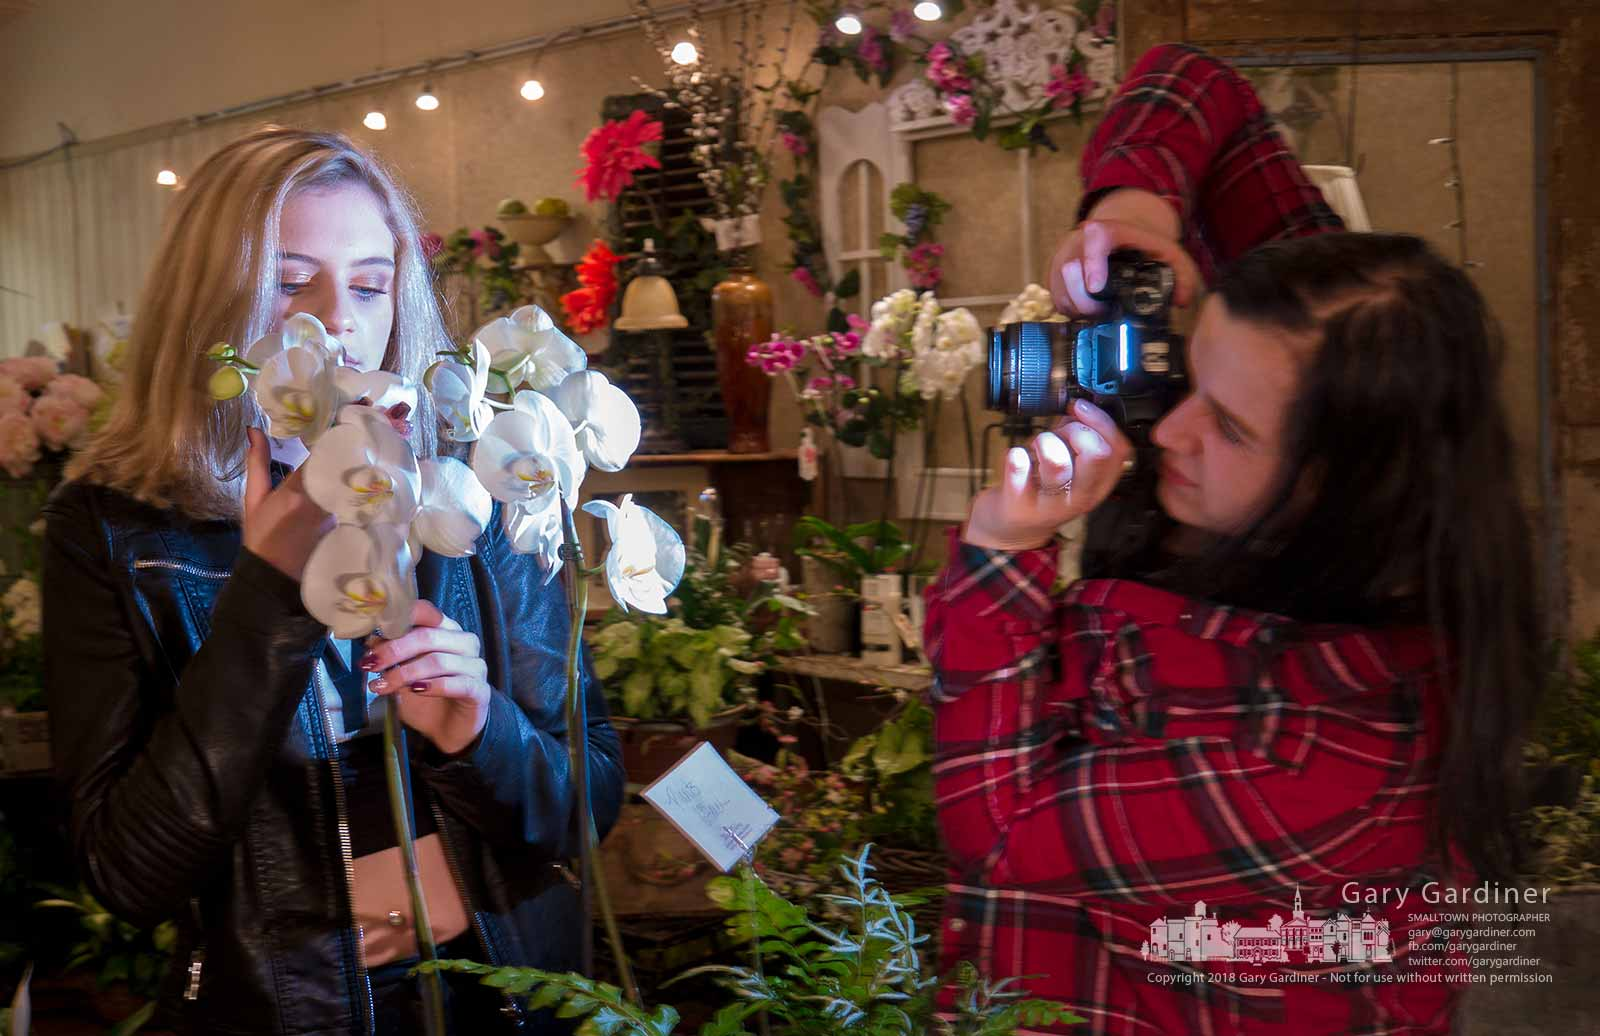 A photographer's flash illuminates her model posing among orchids on display in Talbott's Flowers in Uptown Westerville. My Final Photo for March 27, 2018.